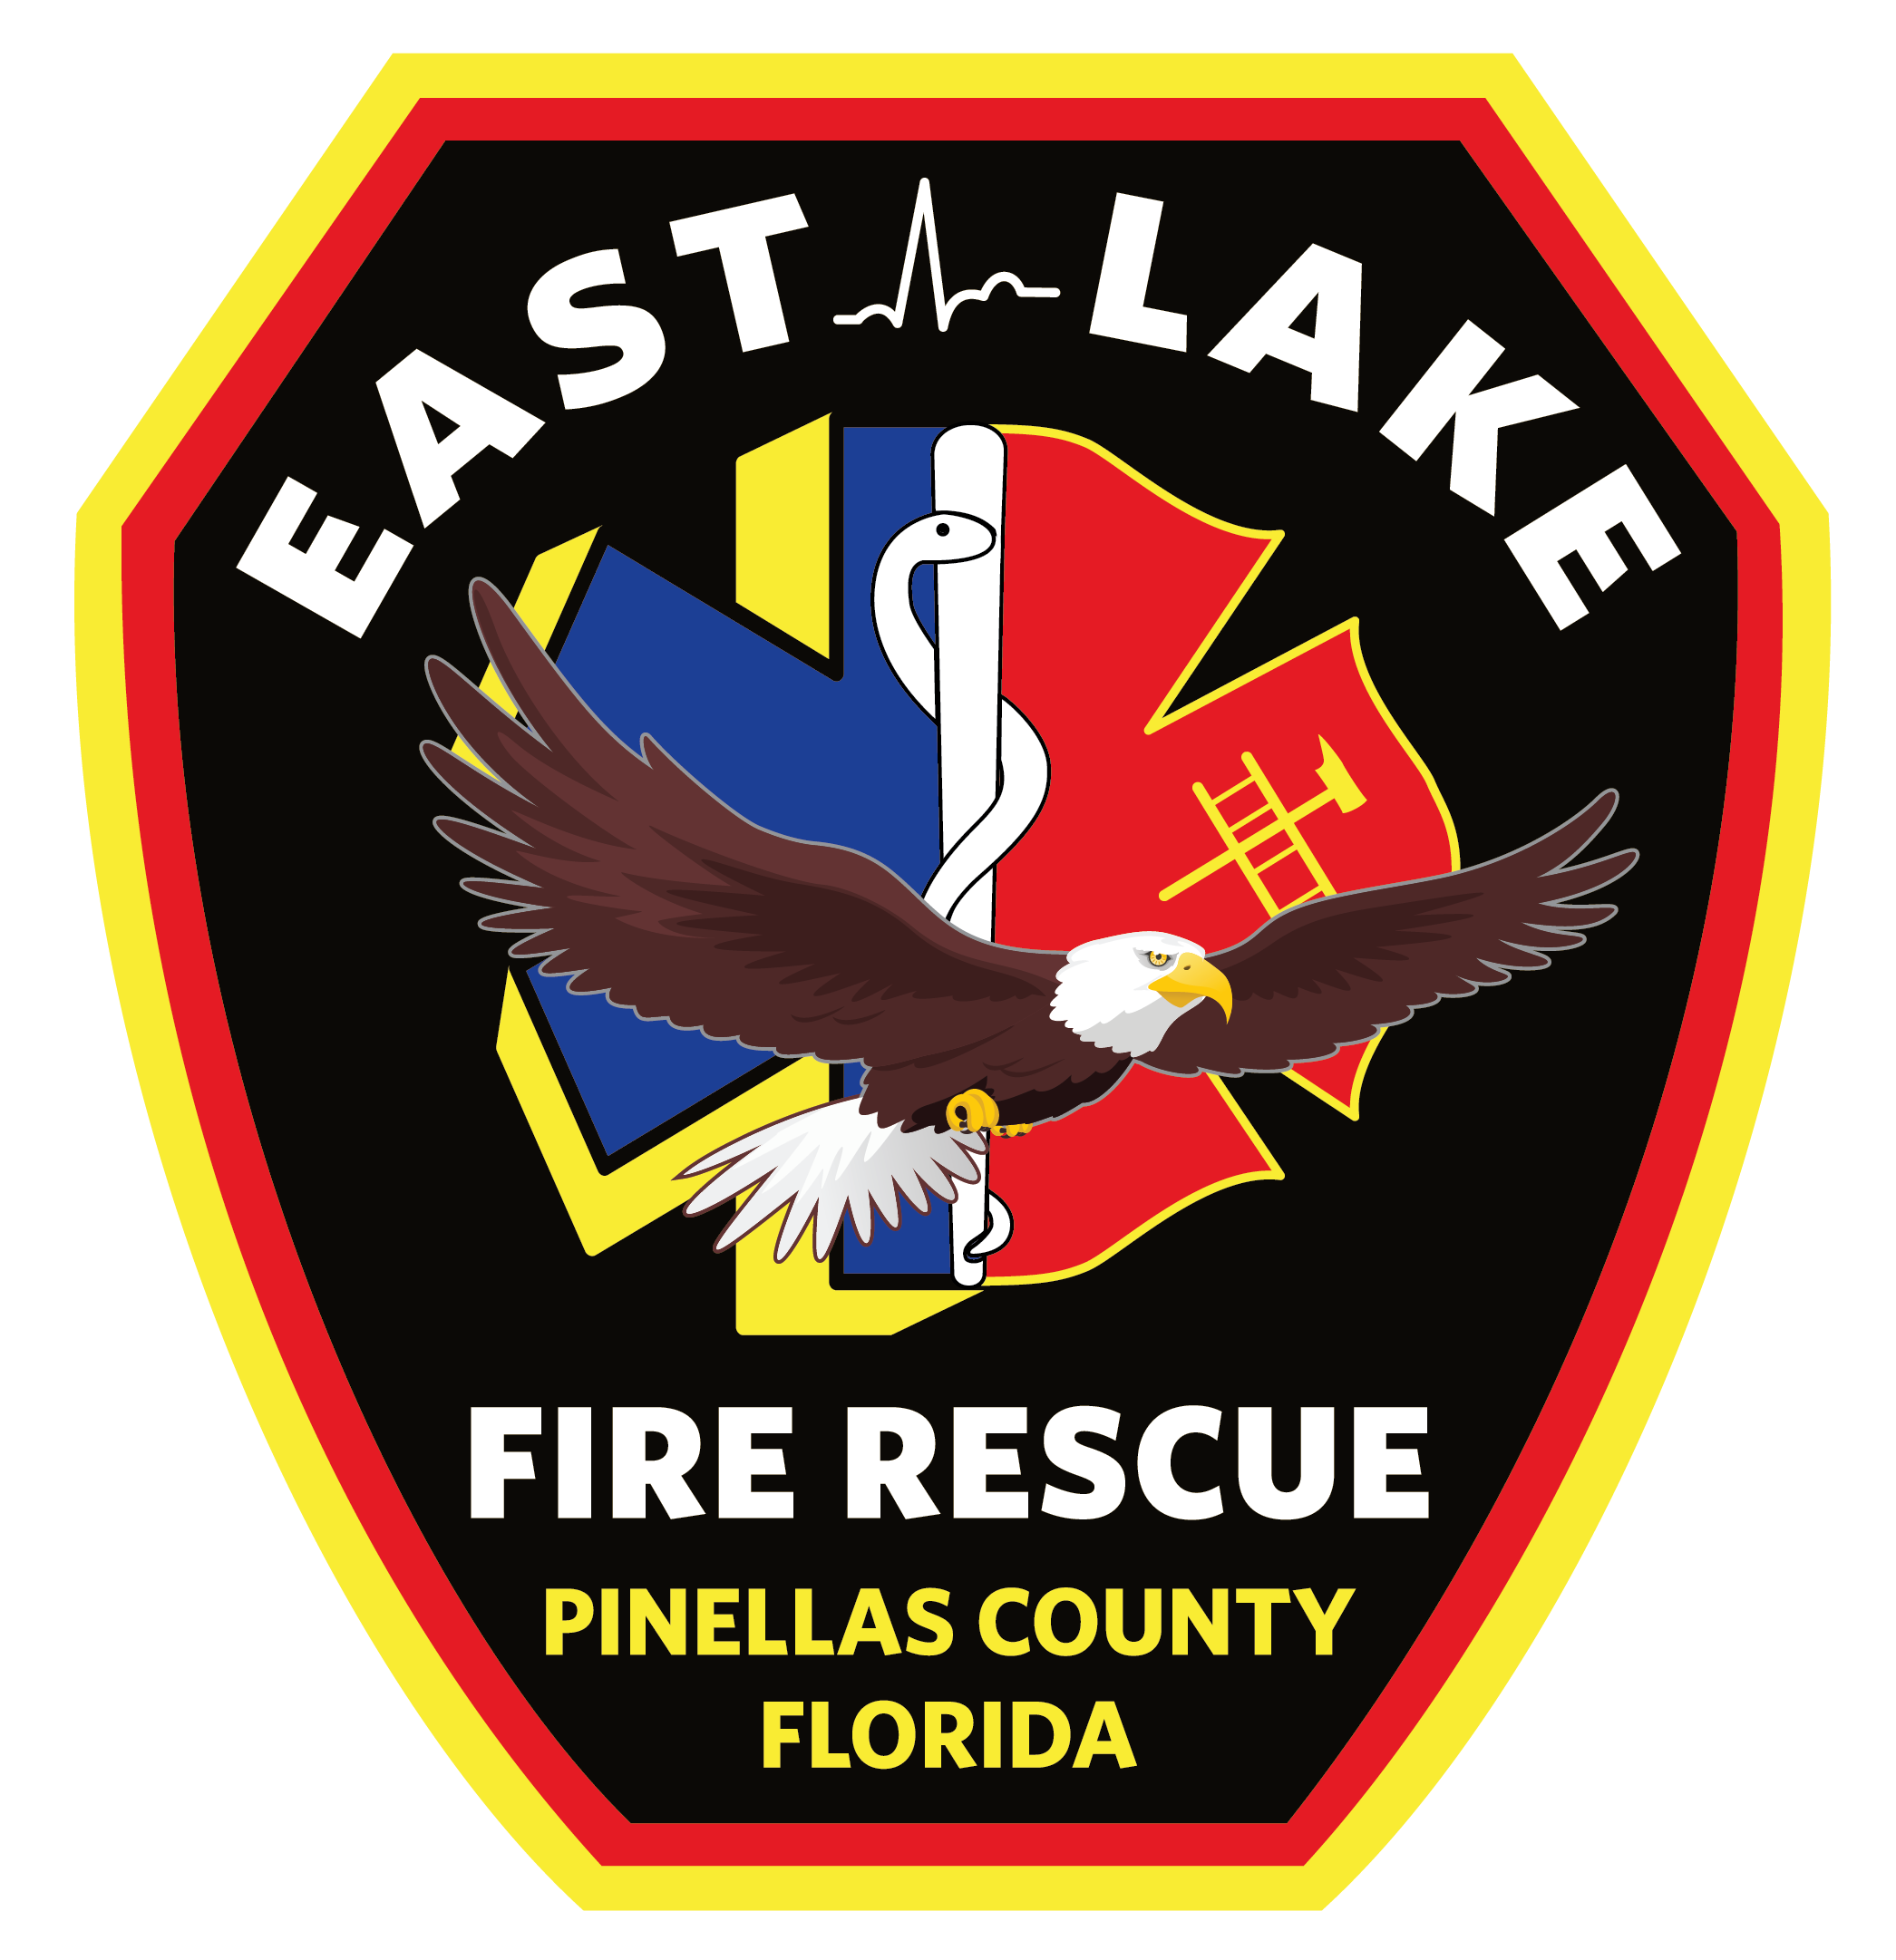 East Lake Fire Rescue